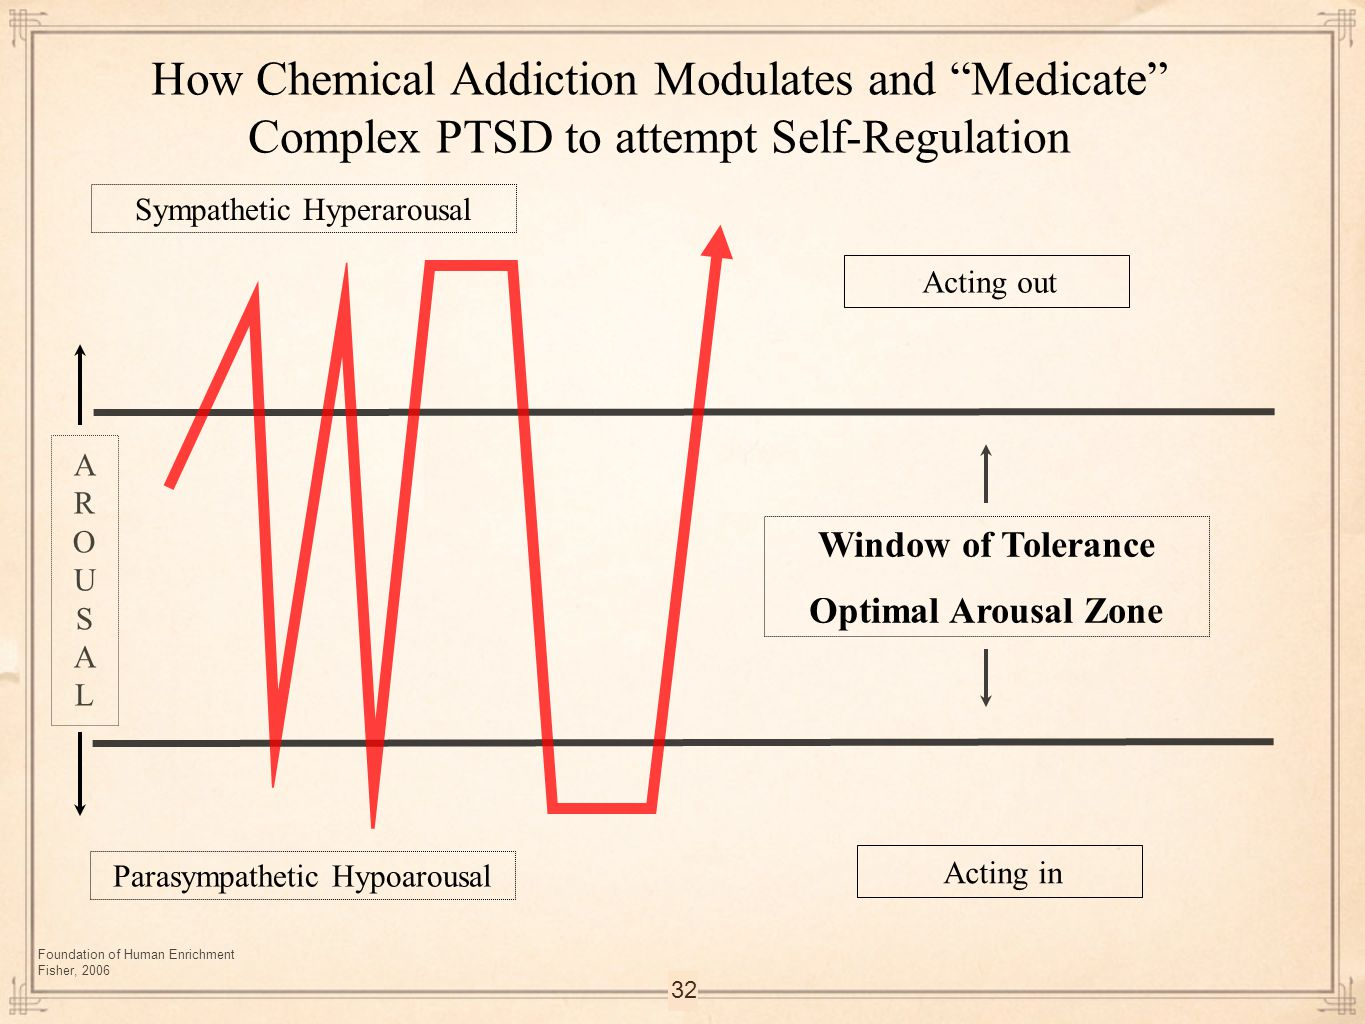 How Chemical Addiction Modulates and Medicate Complex PTSD to attempt Self-Regulation